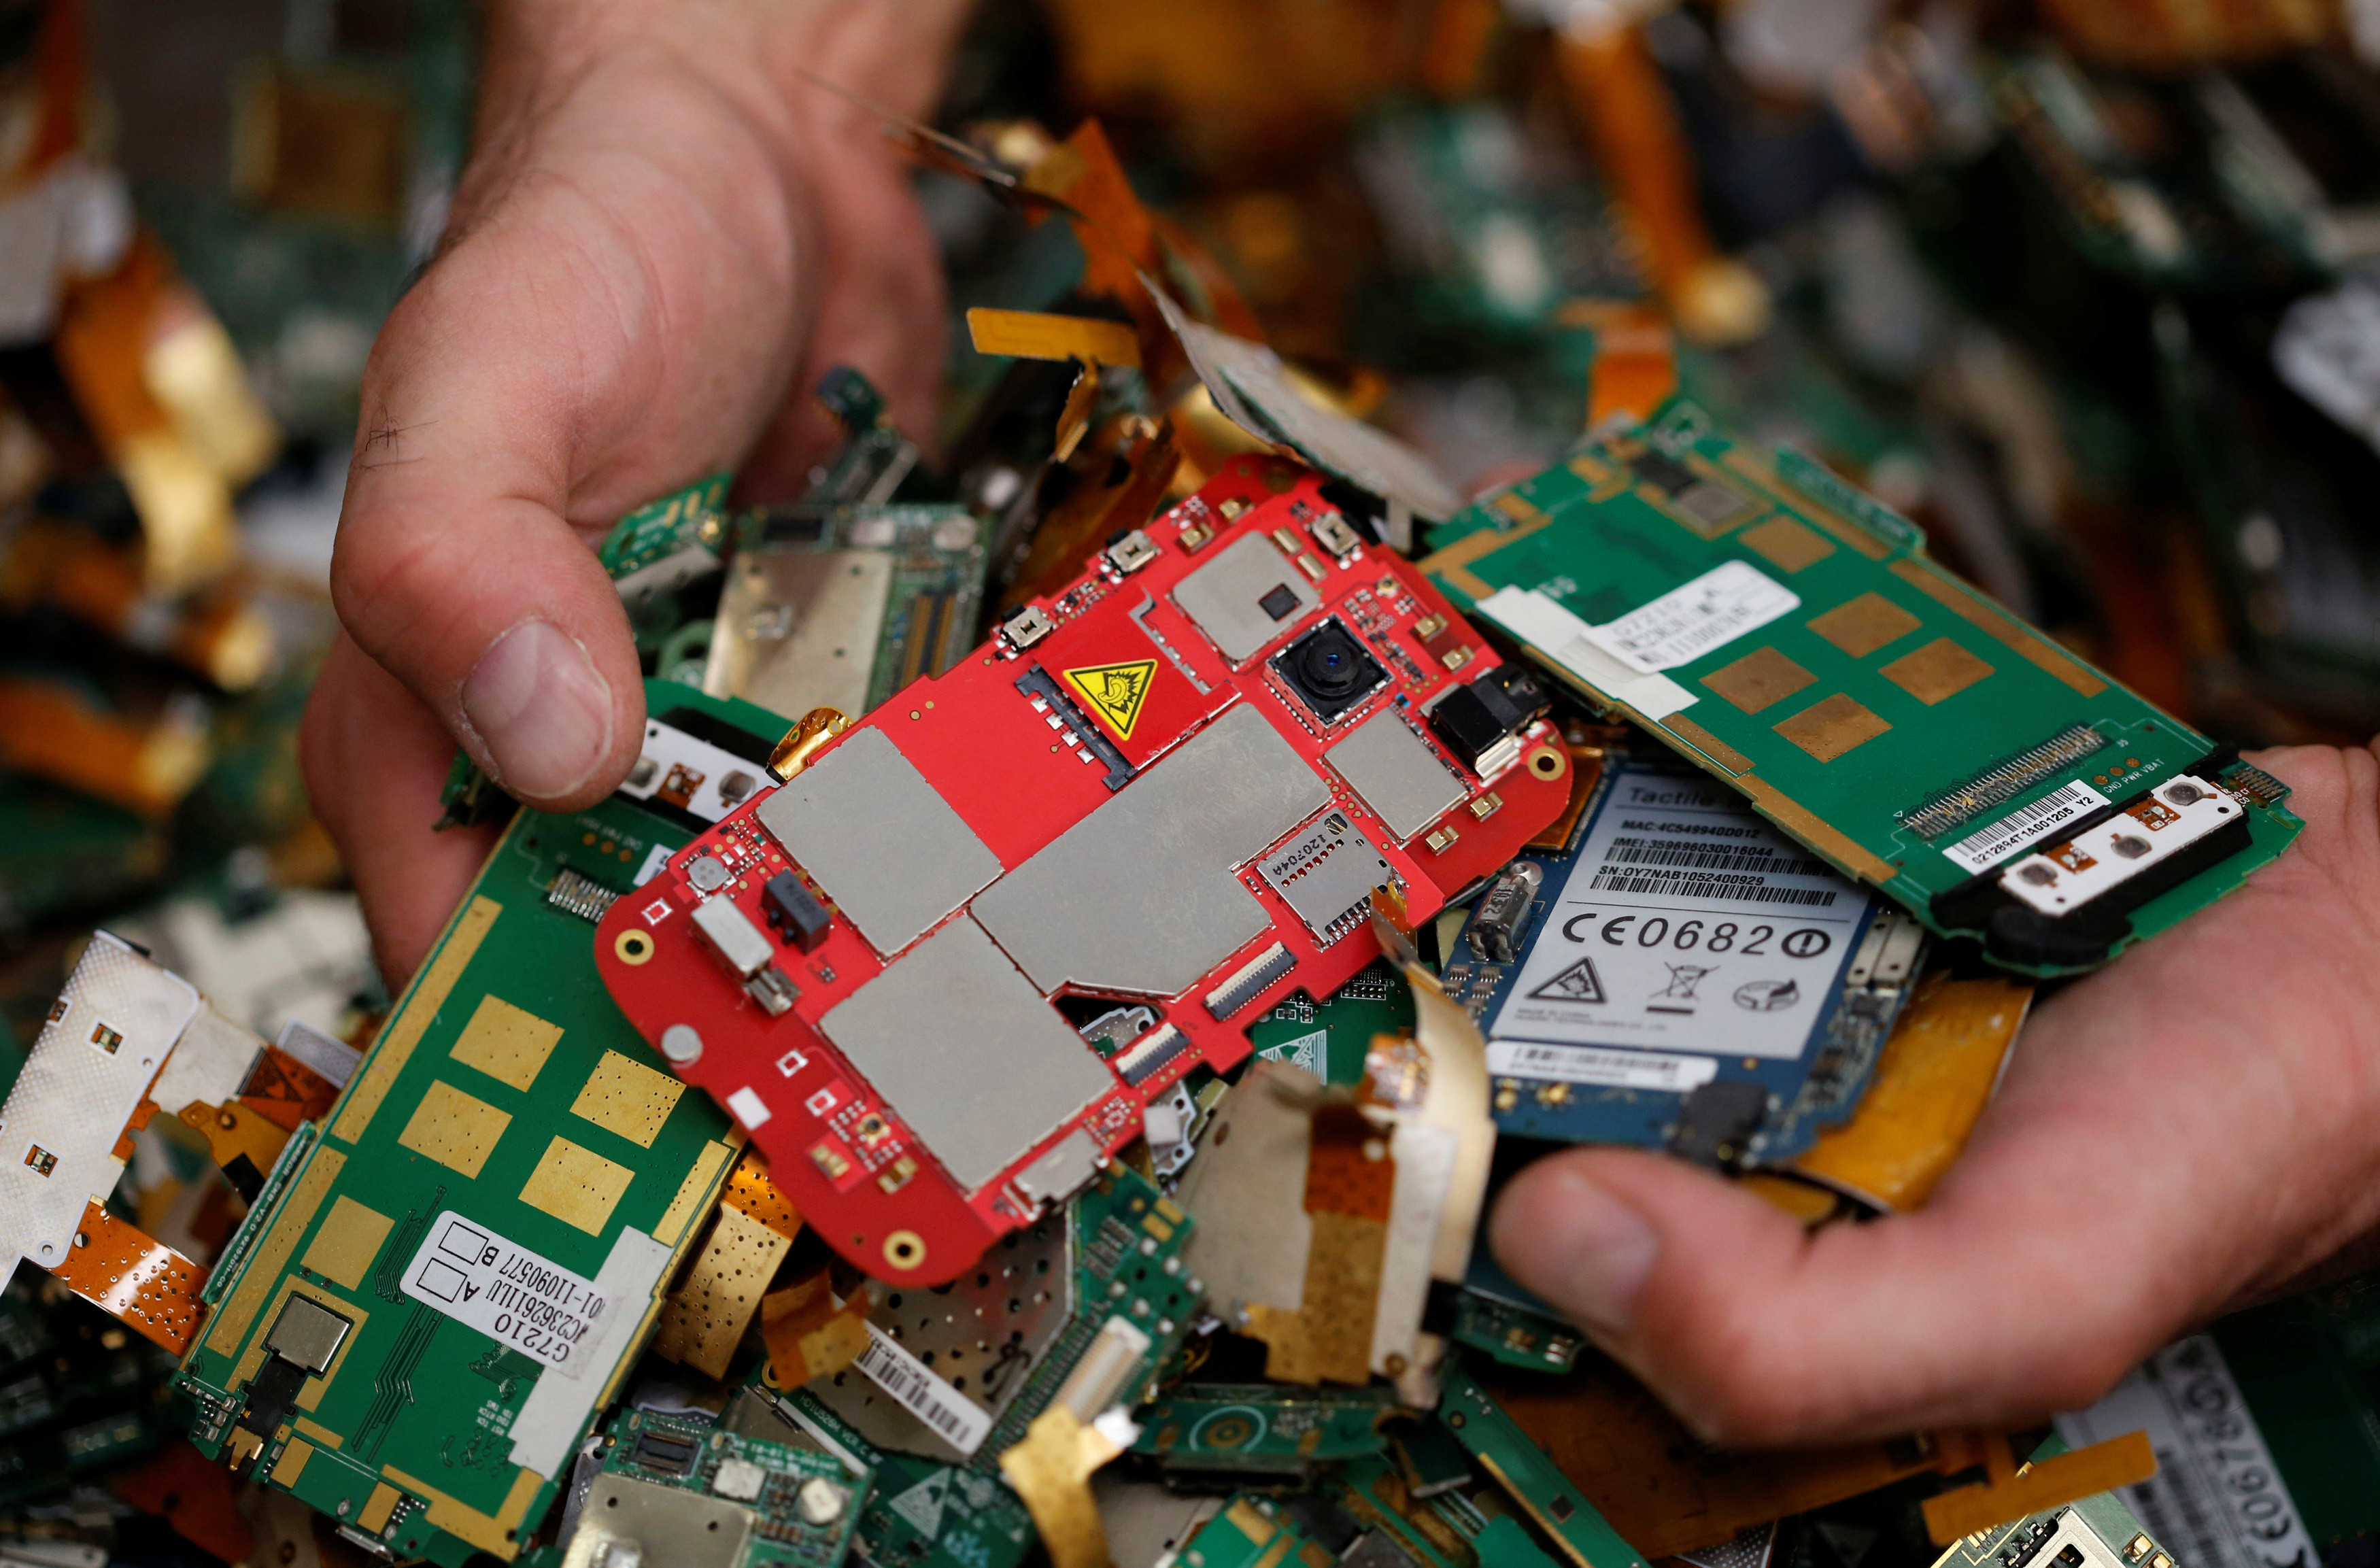 A recycling company worker selects computer cards of old cell phones